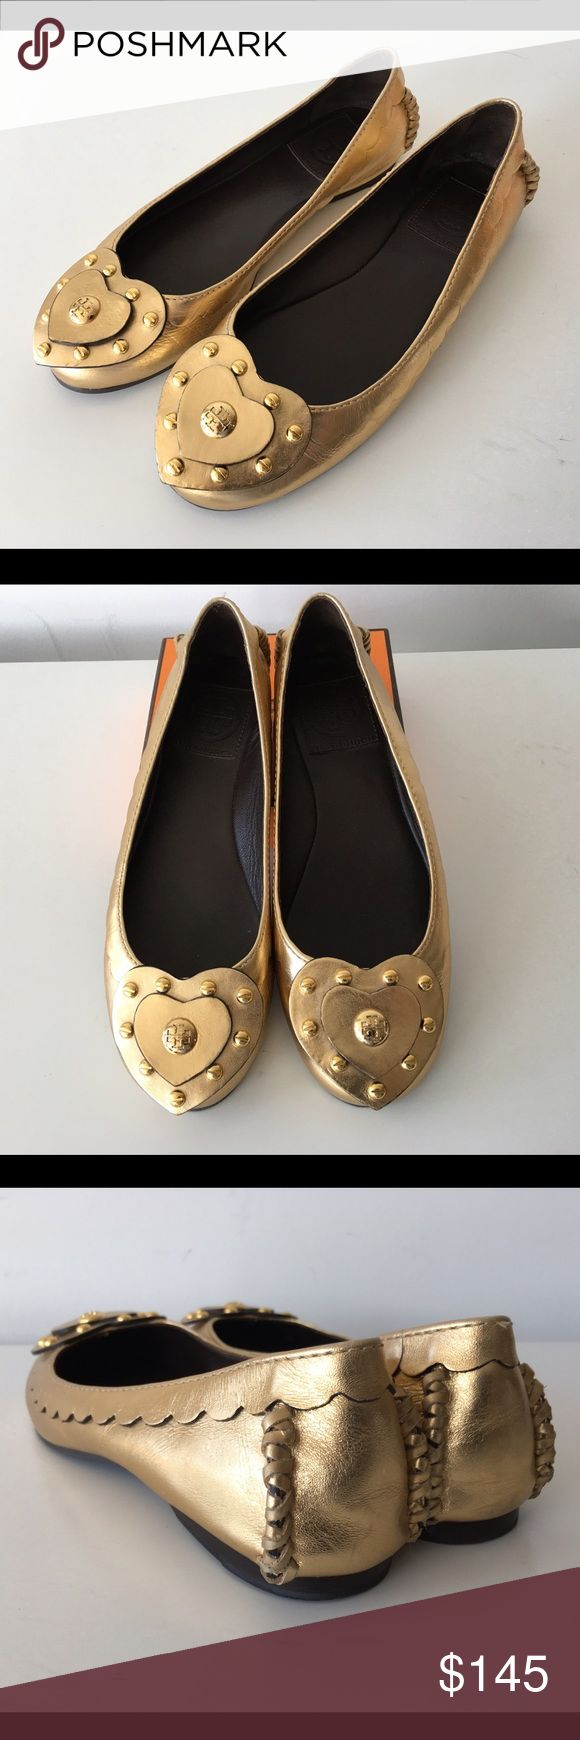 RARE TORY BURCH GOLD METALLIC BALLET FLATS, SIZE 6 RARE TORY BURCH GOLD METALLIC BALLET FLATS, SIZE 6, NO SIGNS OF WEAR ABOVE SOLE, GENTLY USED IN EXCELLENT CONDITION Tory Burch Shoes Flats & Loafers